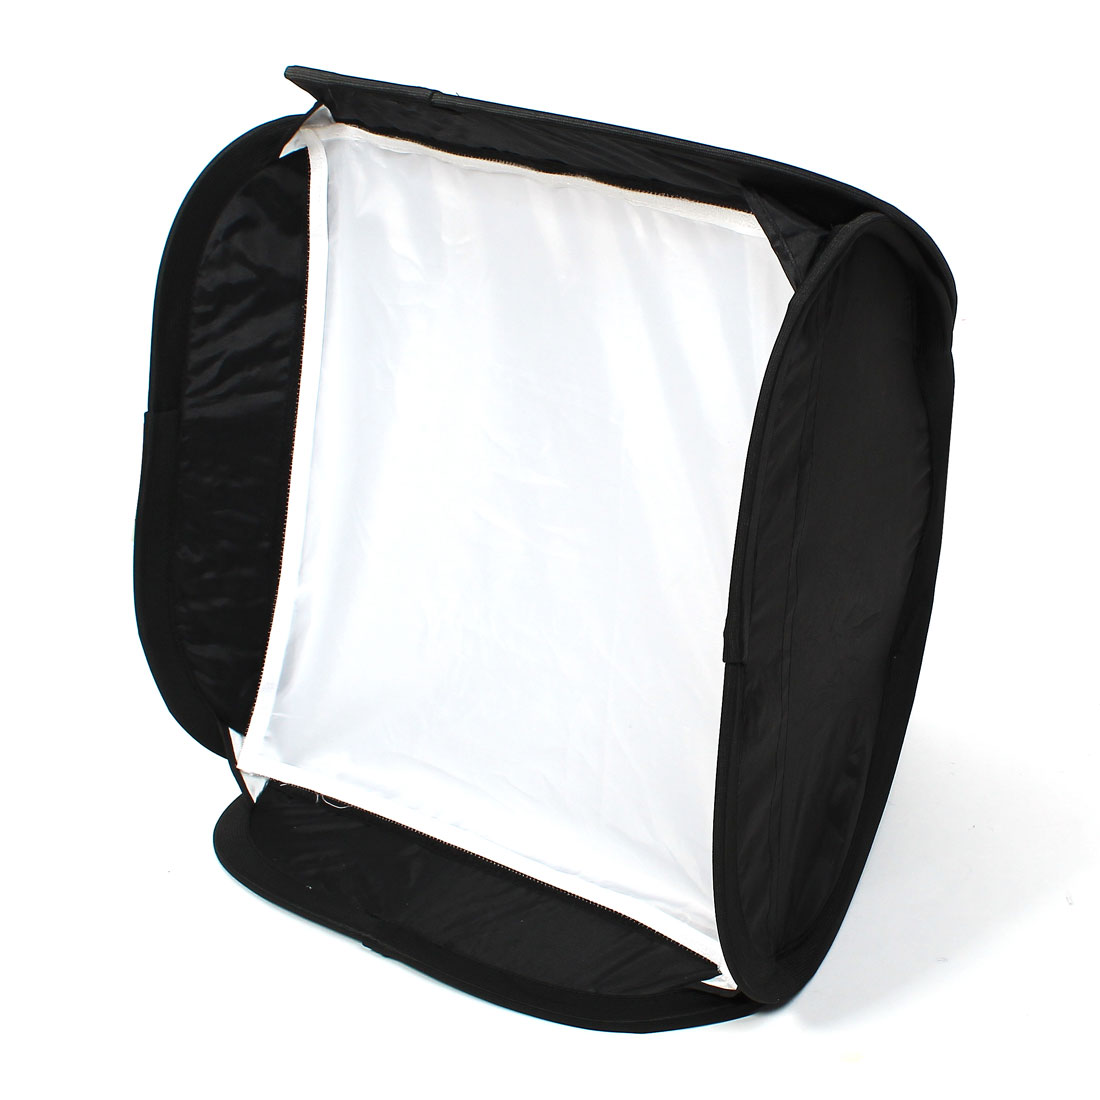 Black/Silver 50x50cm Umbrella Reflective Square Softbox for Flash Light